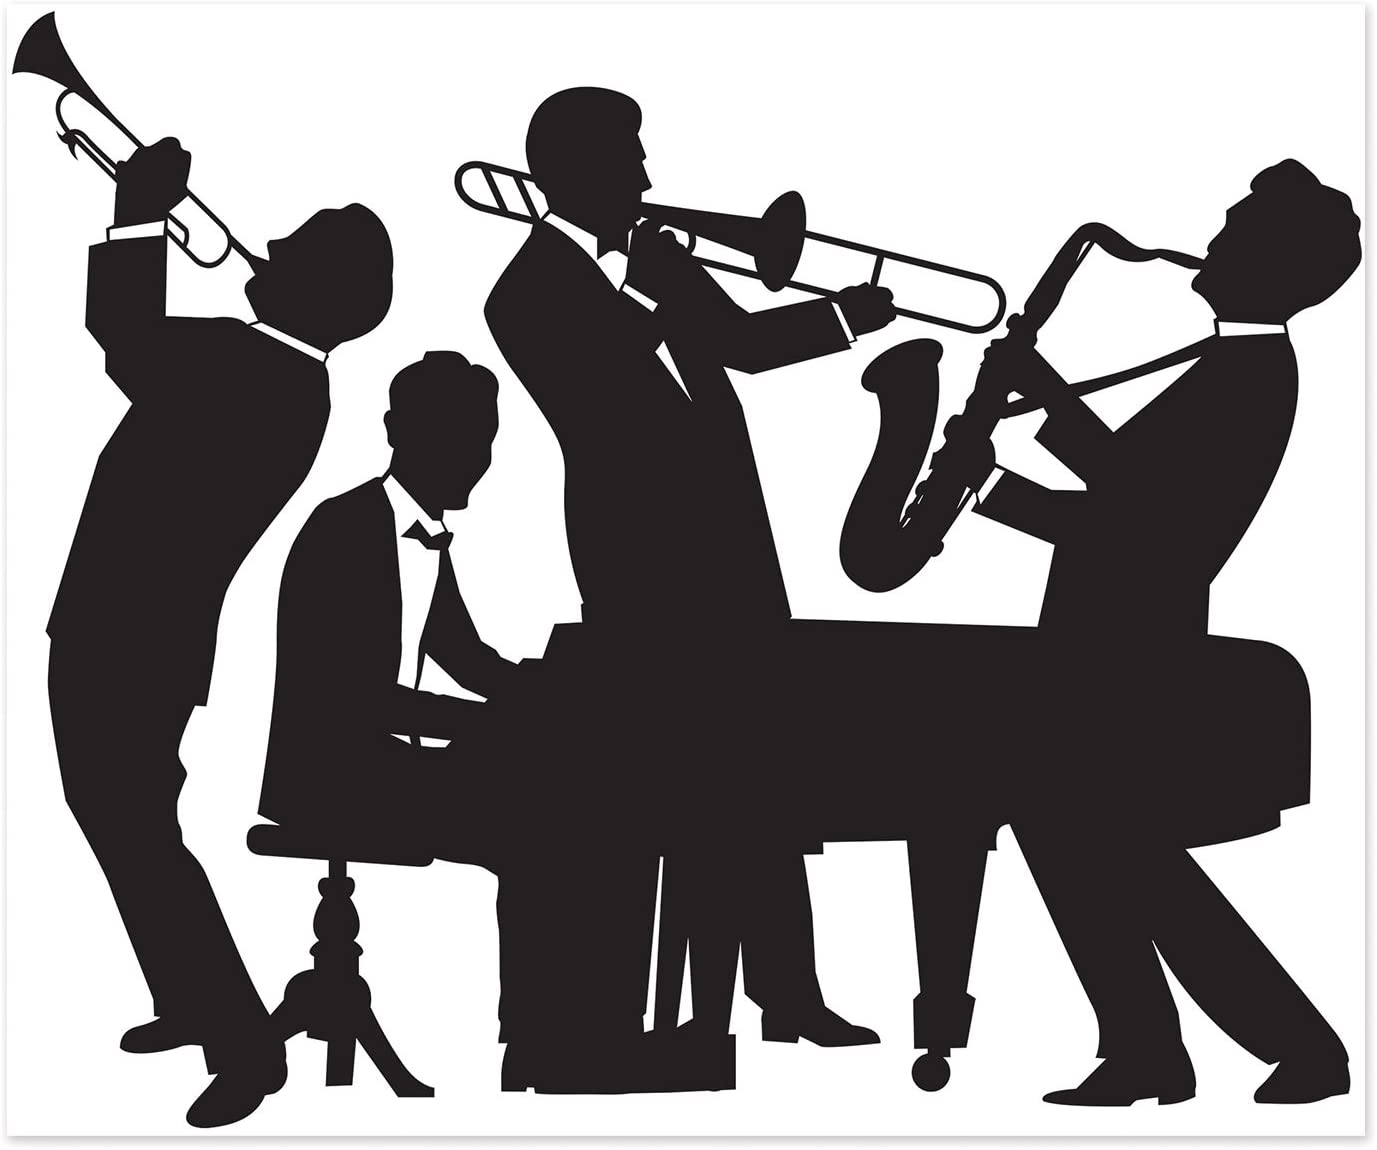 Beistle 52178 20's Jazz Band Insta Mural Complete Wall Decoration Mardi Gras Music Party Supplies, 5' x 6', Black/White